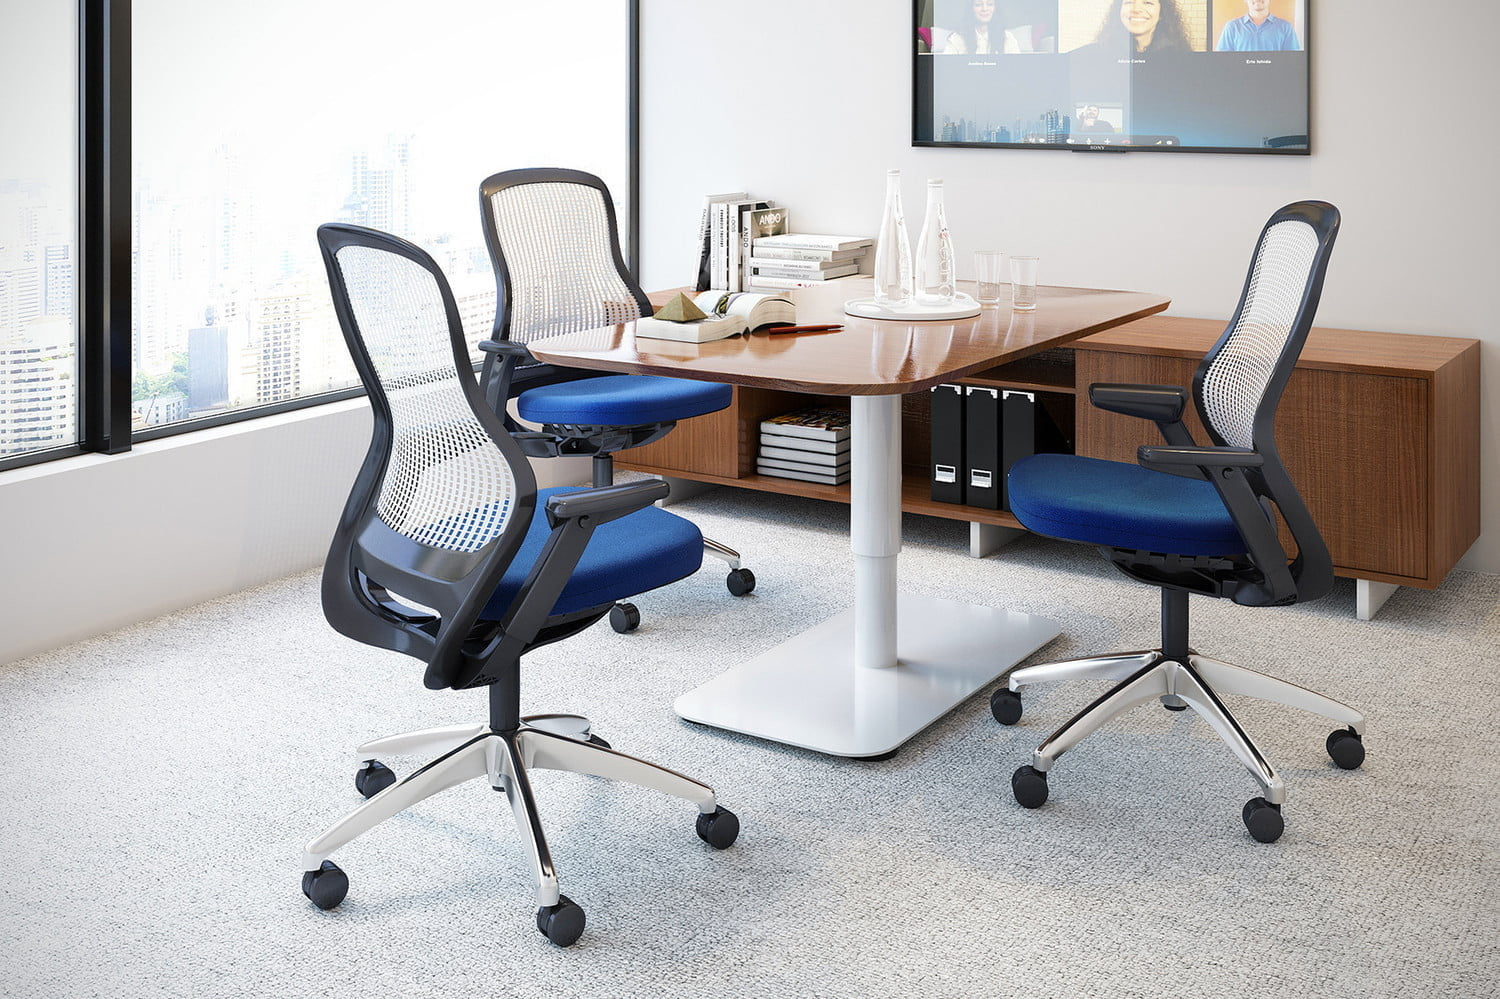 Knoll Regeneration Chair The 9 Best Desk Chairs For Home And Office Digital Trends